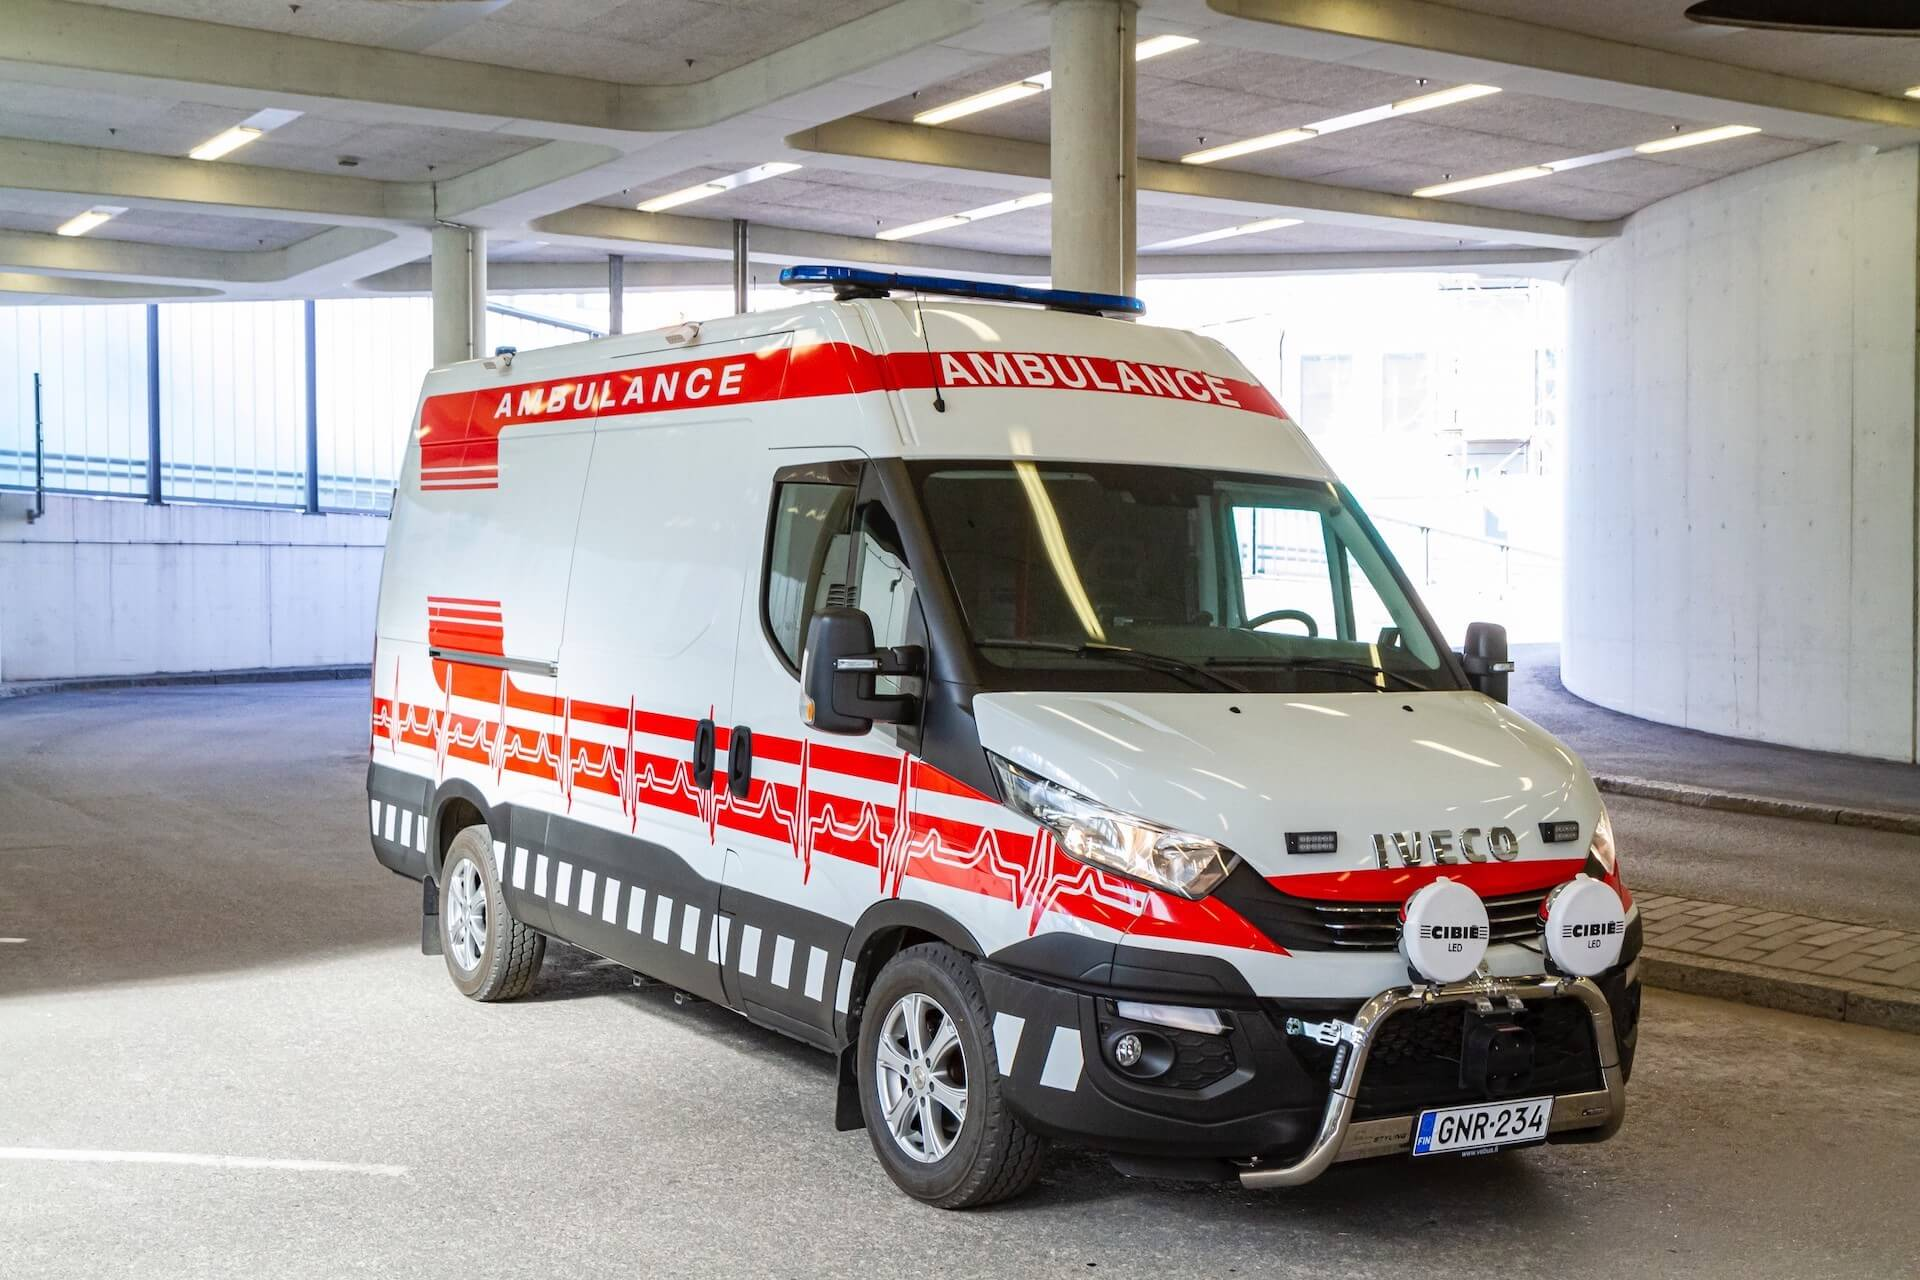 iveco-daily-ambulance-finland-2-